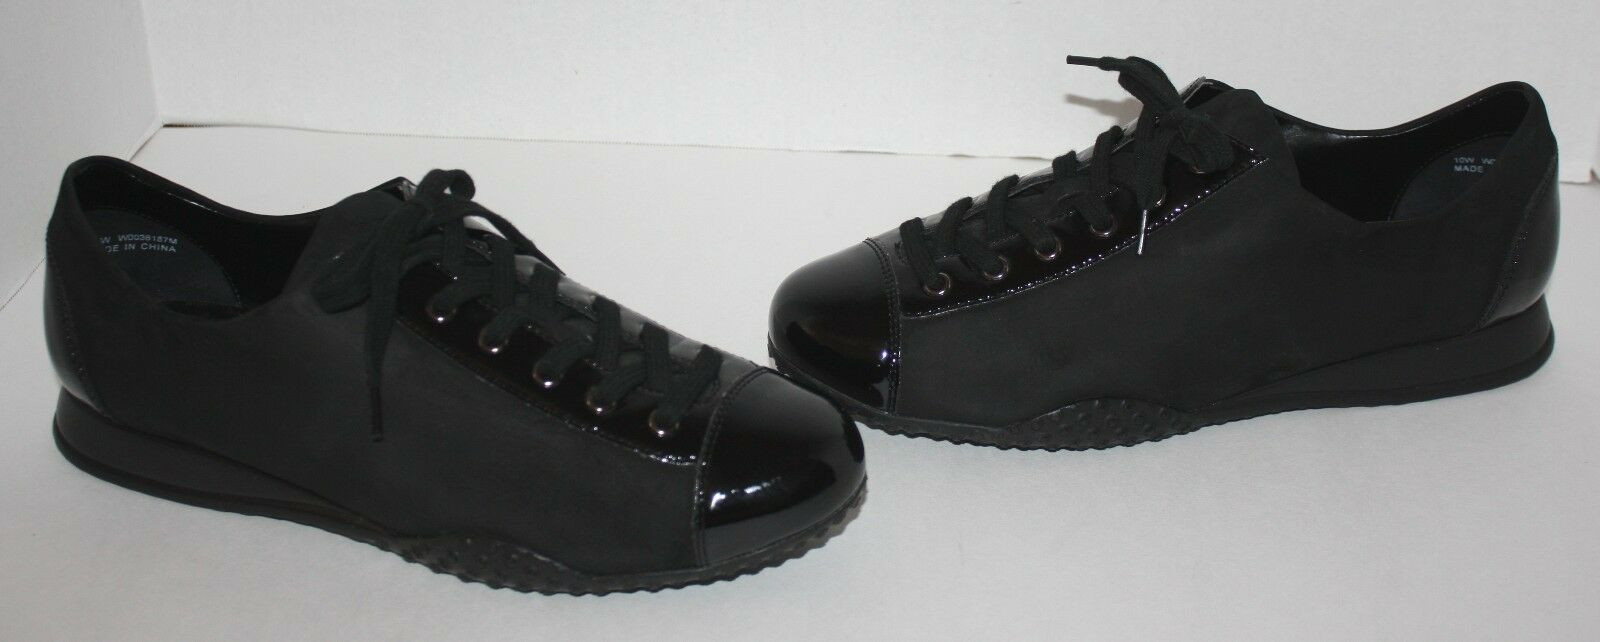 Womens Walking Cradles Black Leather Comfort Shoes Size 10 W